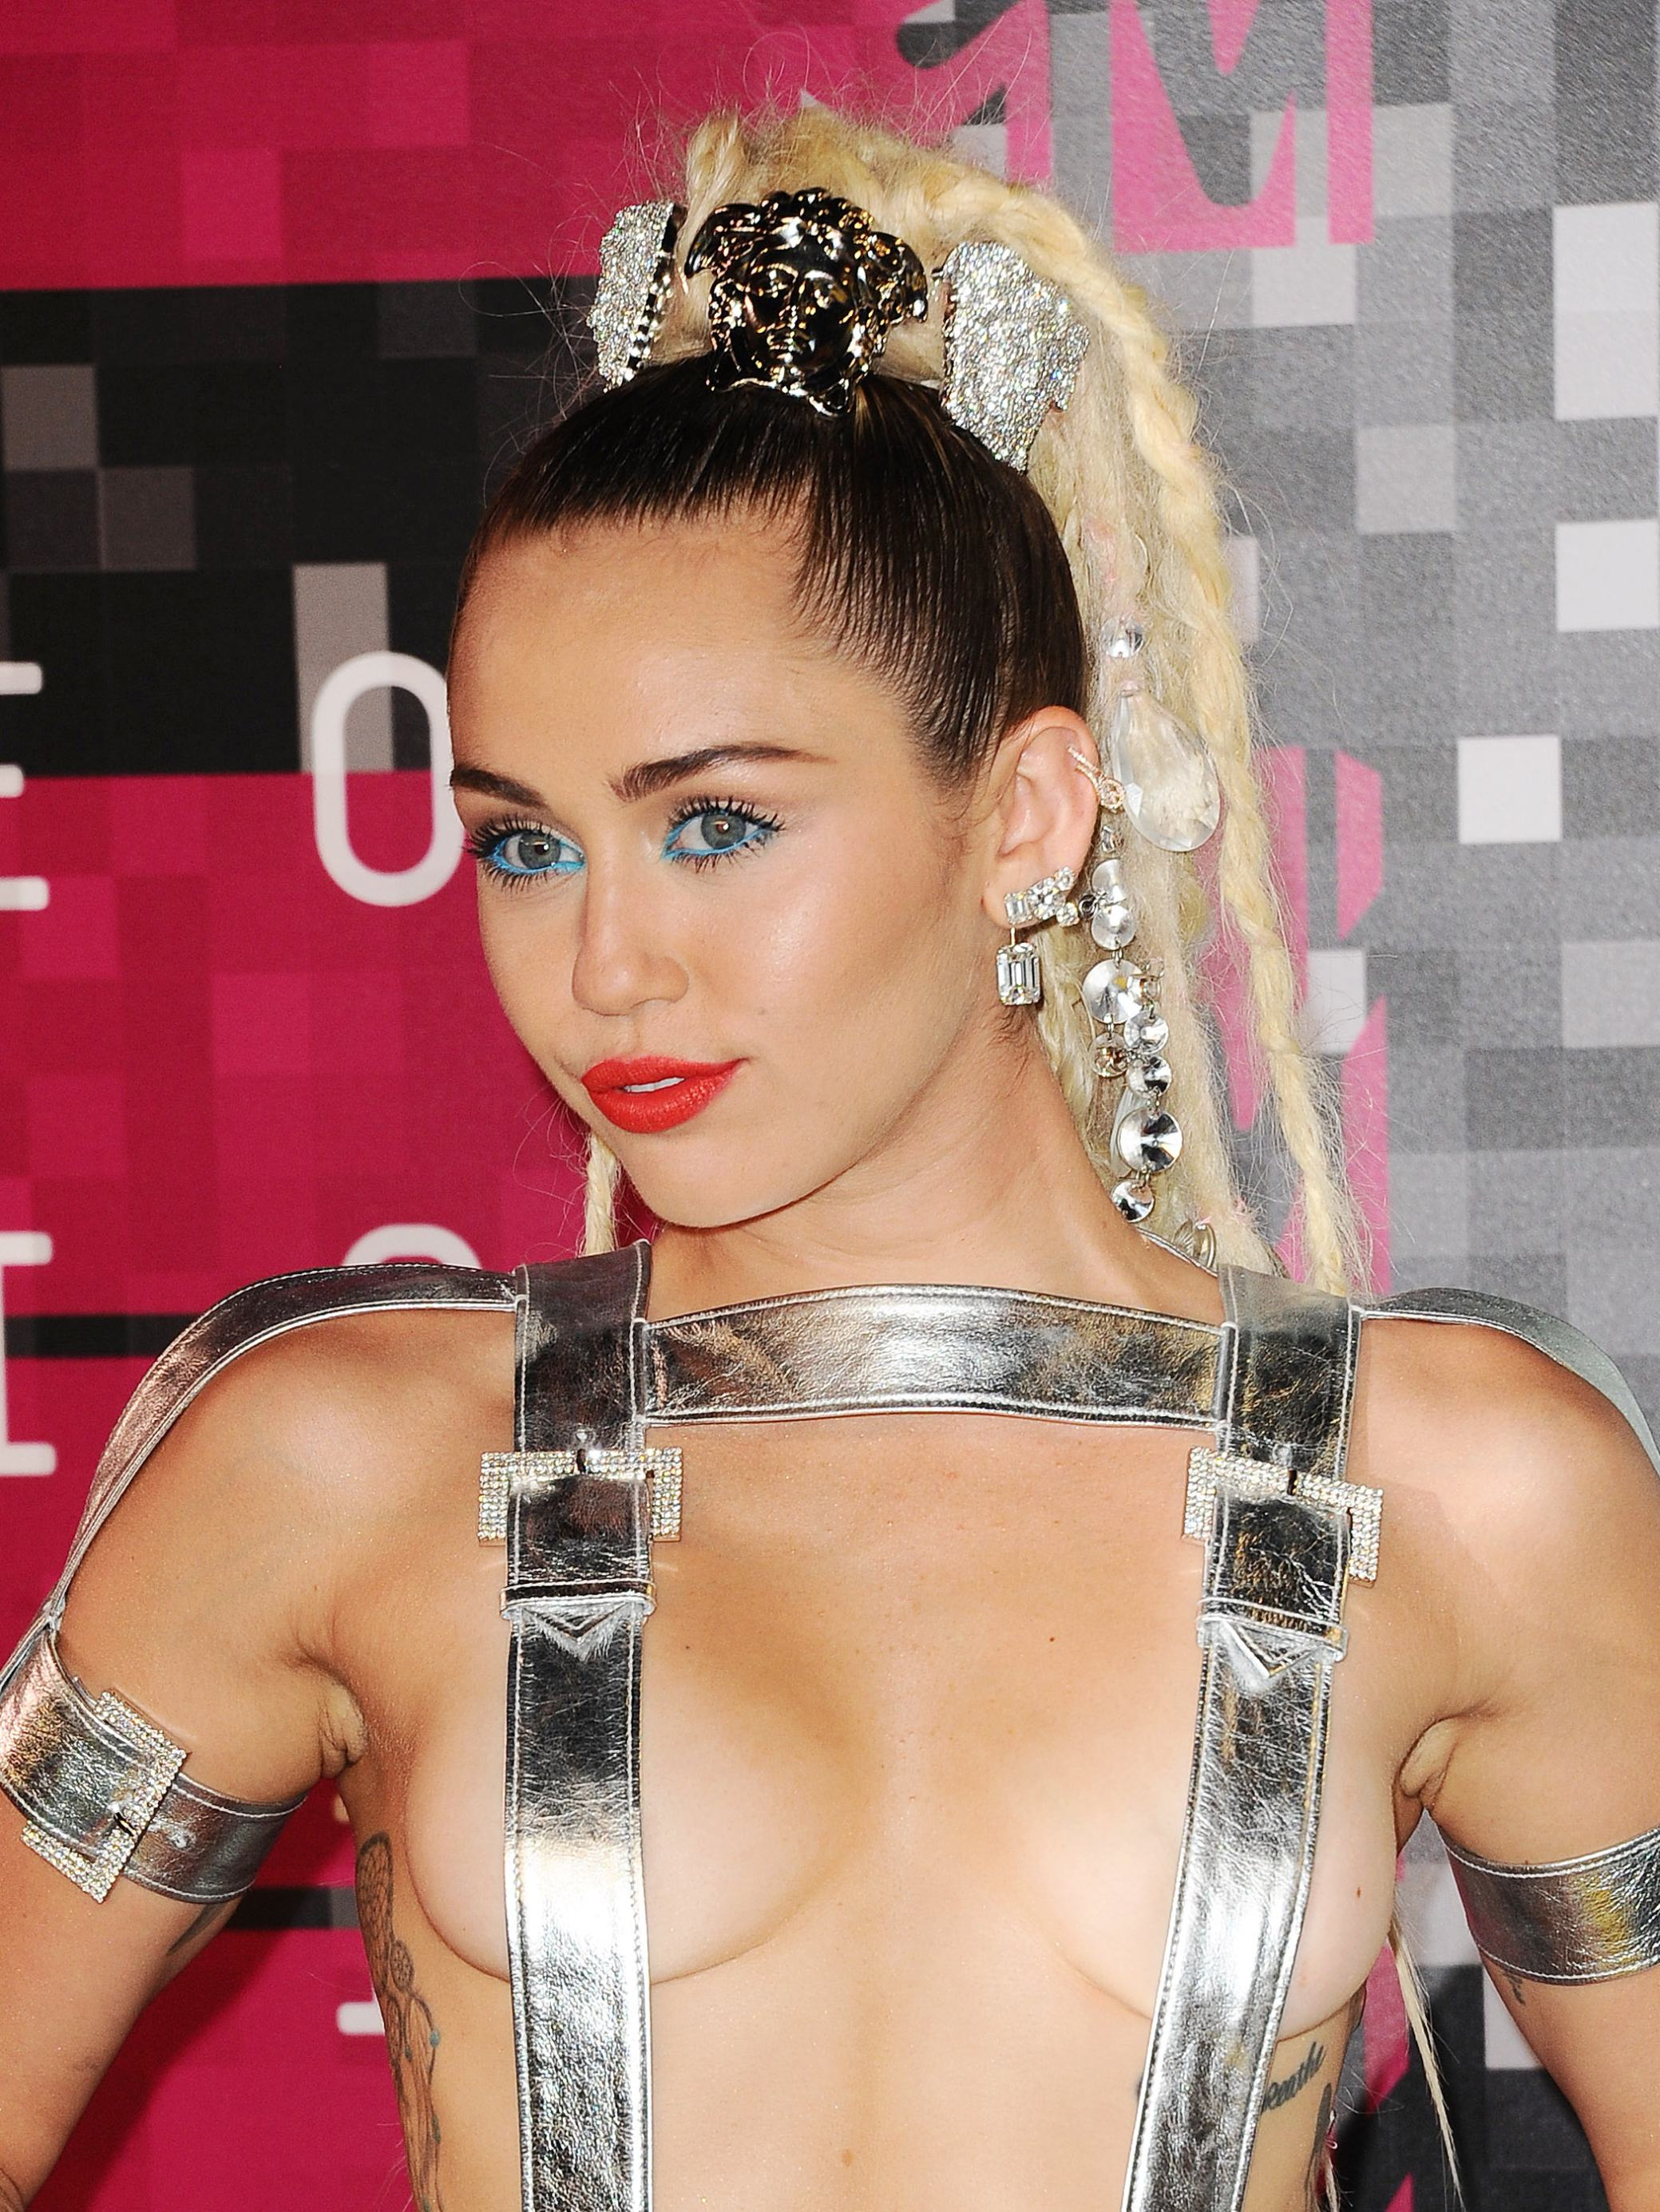 Miley-Cyrus-Thong-Ass-Flash-halvnøgen-Mtv-Video-Musik-3235